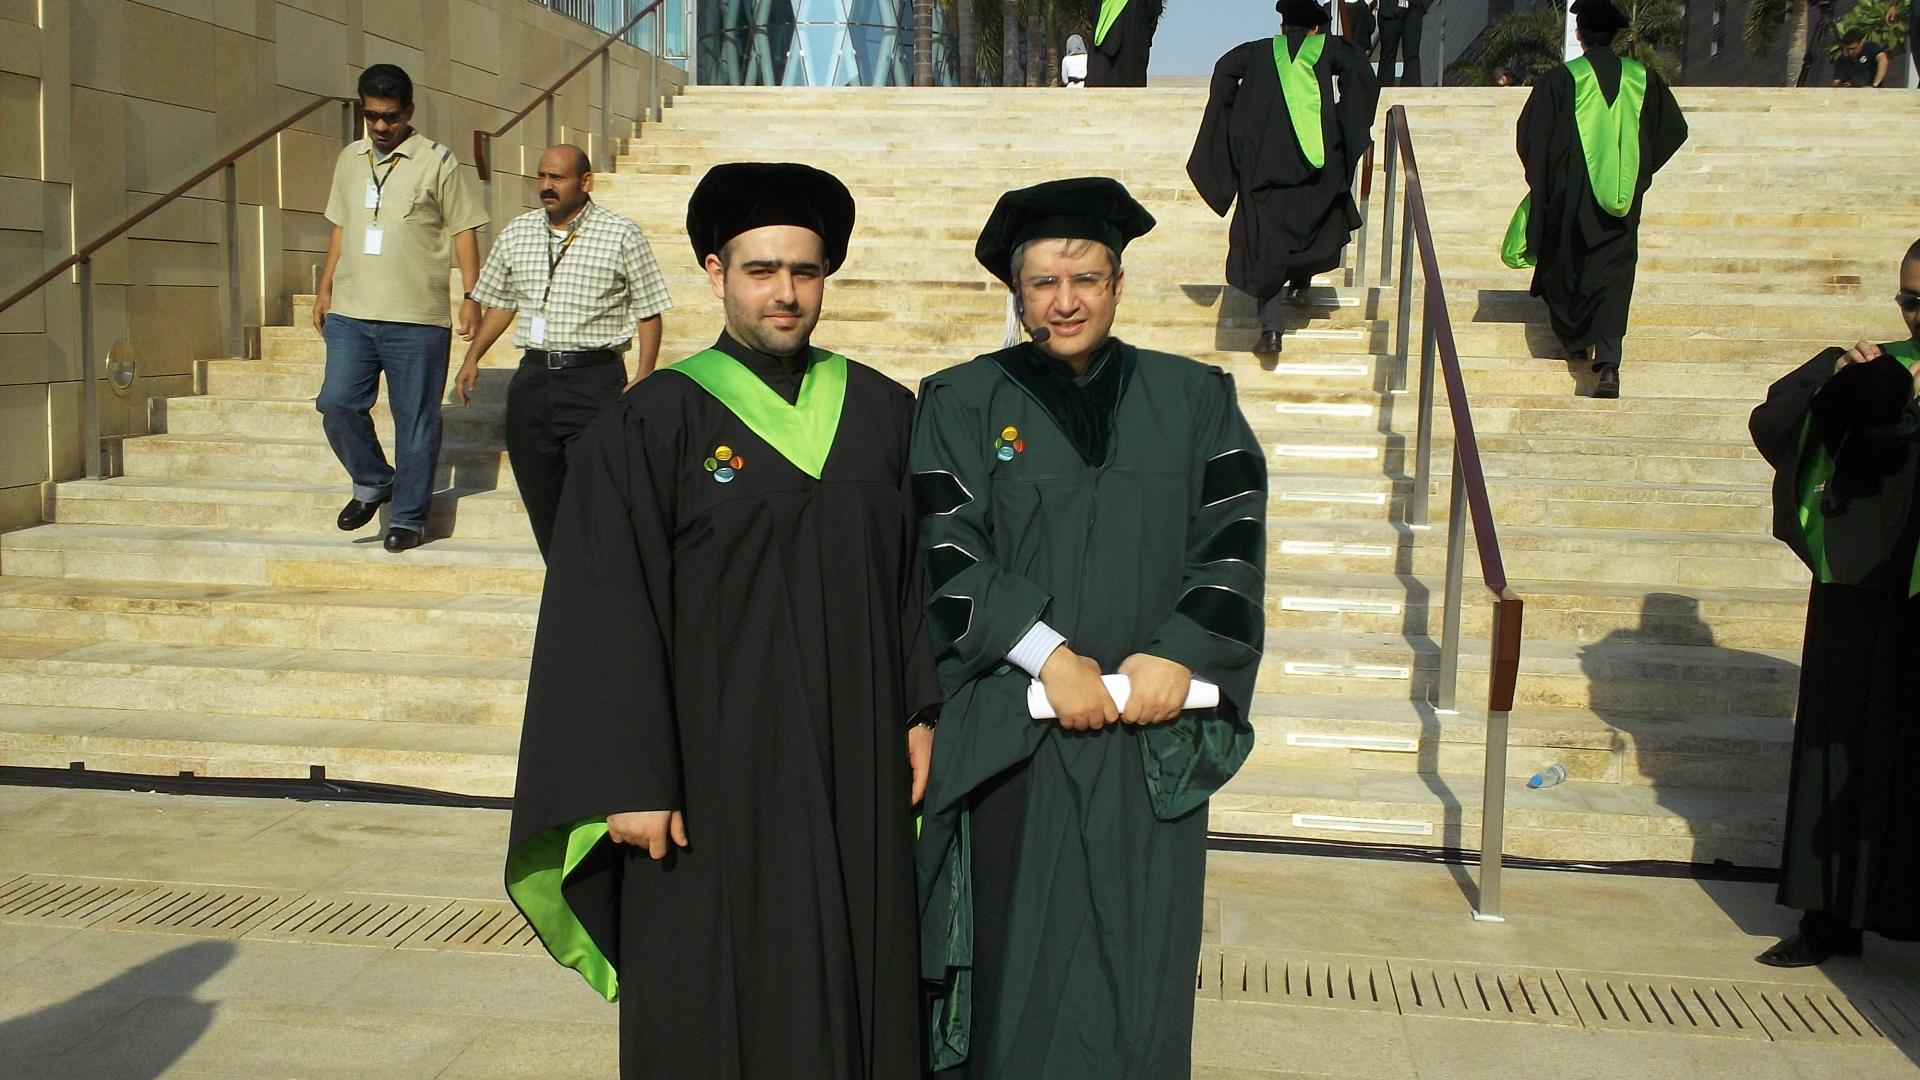 Fakhreddine Gaaloul With Professor Mohamed-Slim Alouini on His Graduation